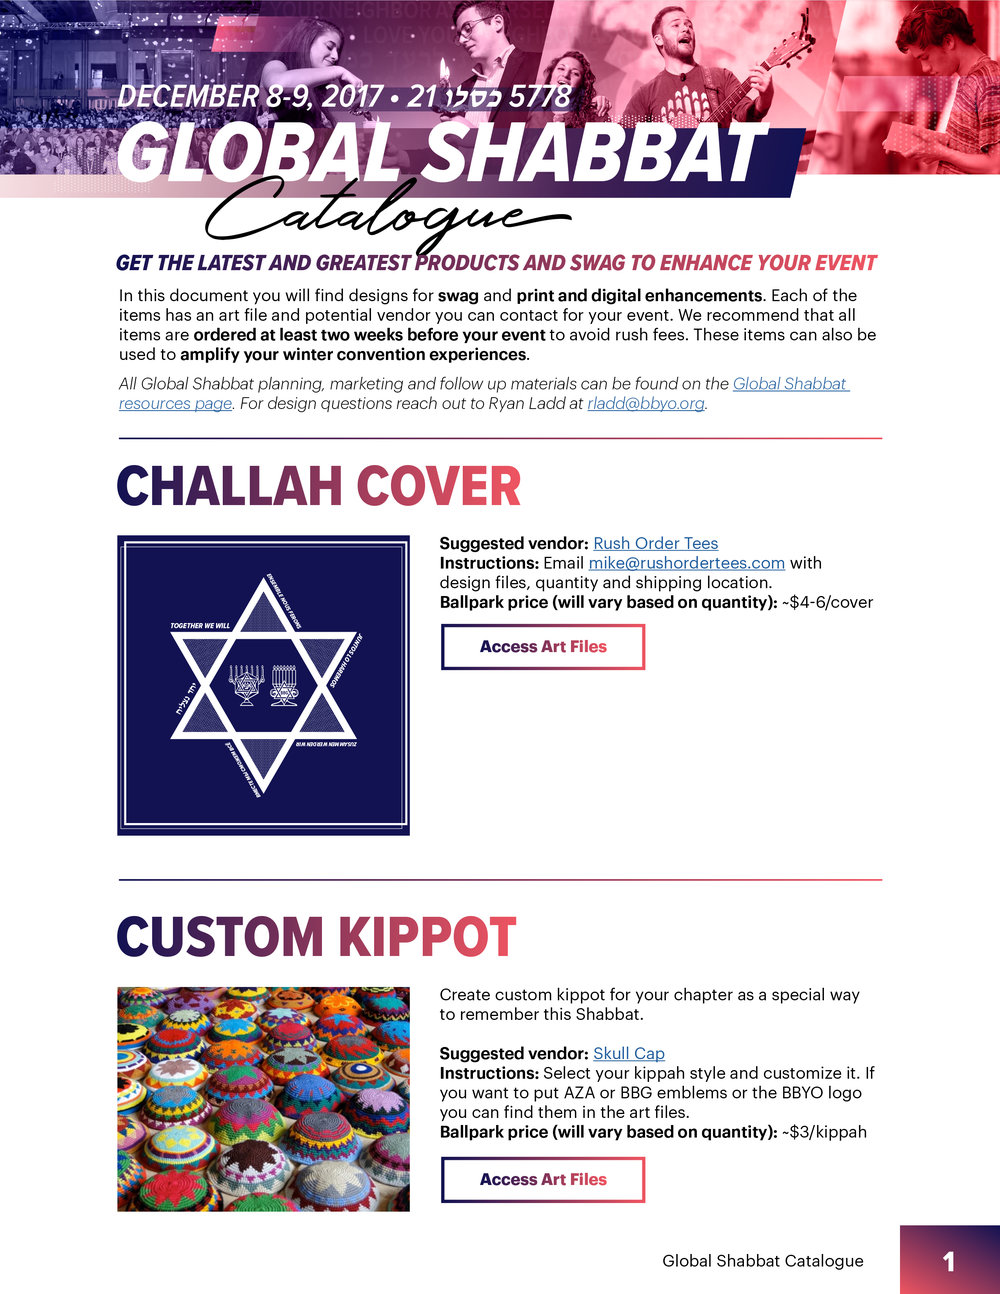 Global Shabbat Catalogue Access designs for swag and print enhancements for Global Shabbat events including banners, posters, event specific merchandise and Shabbat Judaica. Each item has an art file and potential vendor you can contact for your event. We recommend that all items are ordered at least two weeks before your event to avoid rush fees. These items can also be used to amplify your winter convention experiences.  Art work can be customized and adapted to suit items not in the guide.